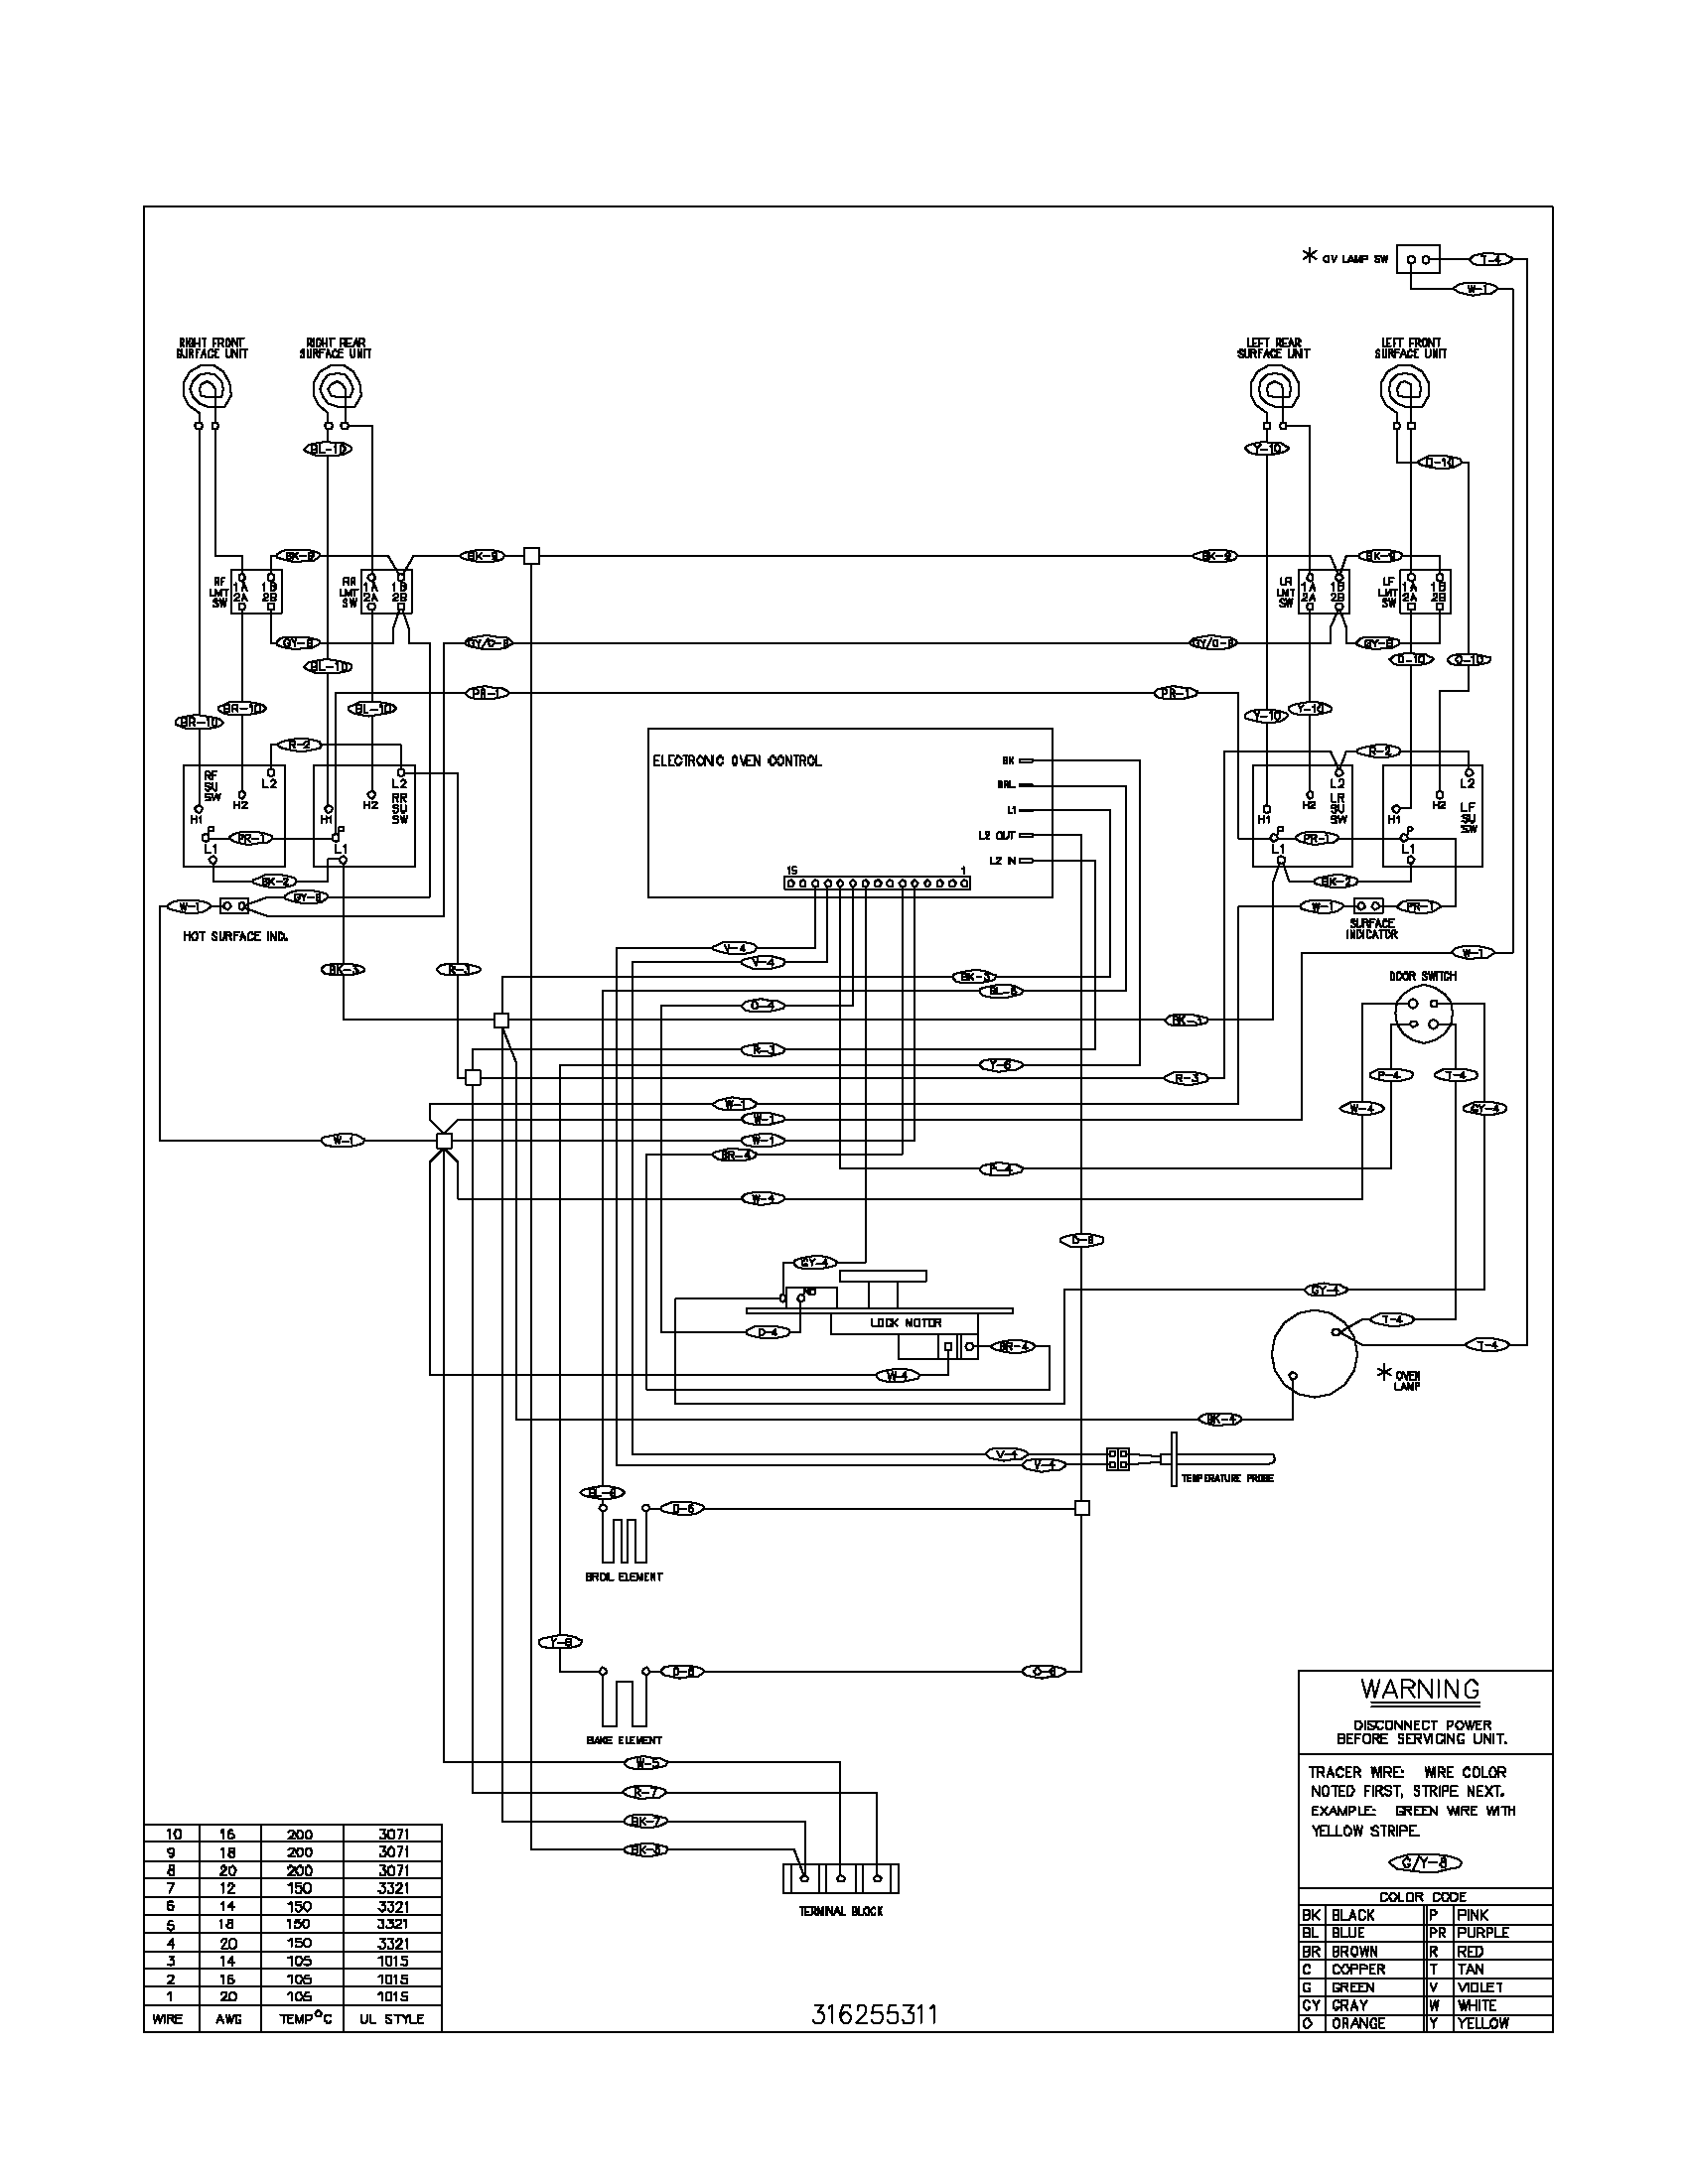 frigidaire fef366ccb electric range timer stove clocks and appliance timers frigidaire gallery stove wiring diagram Frigidaire Oven Wiring Diagram